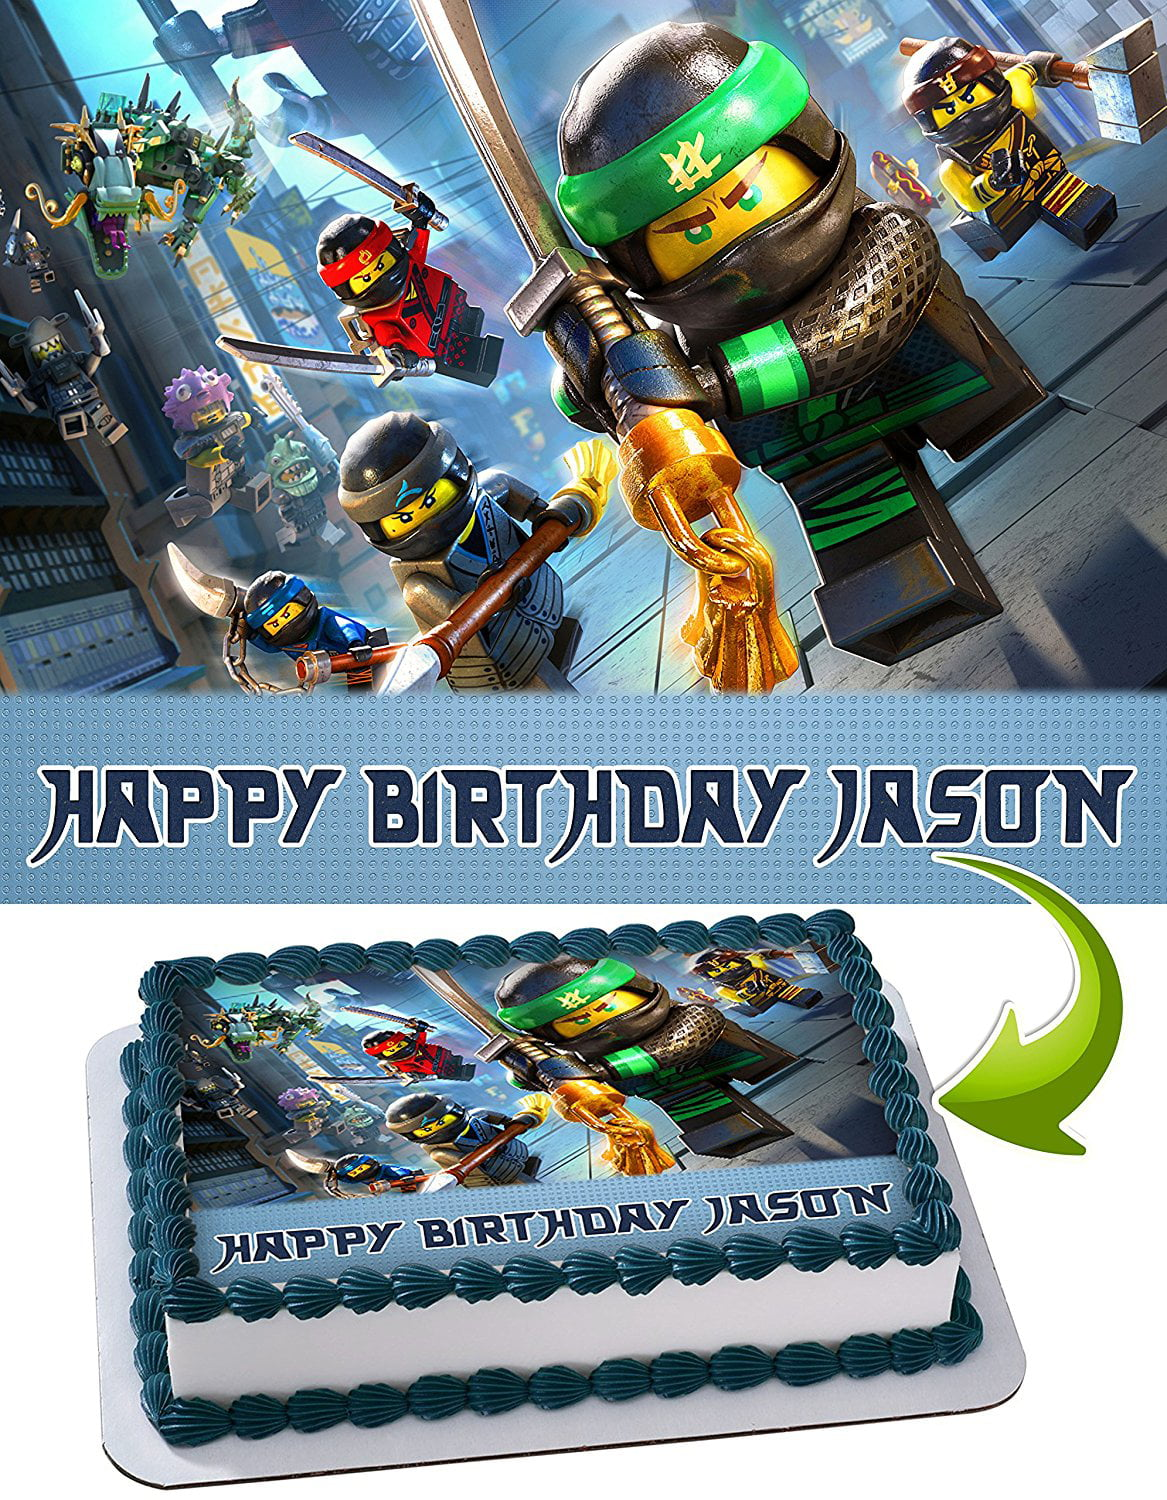 LEGO NINJAGO Personalized Cake Toppers Icing Sugar Paper A4 ...